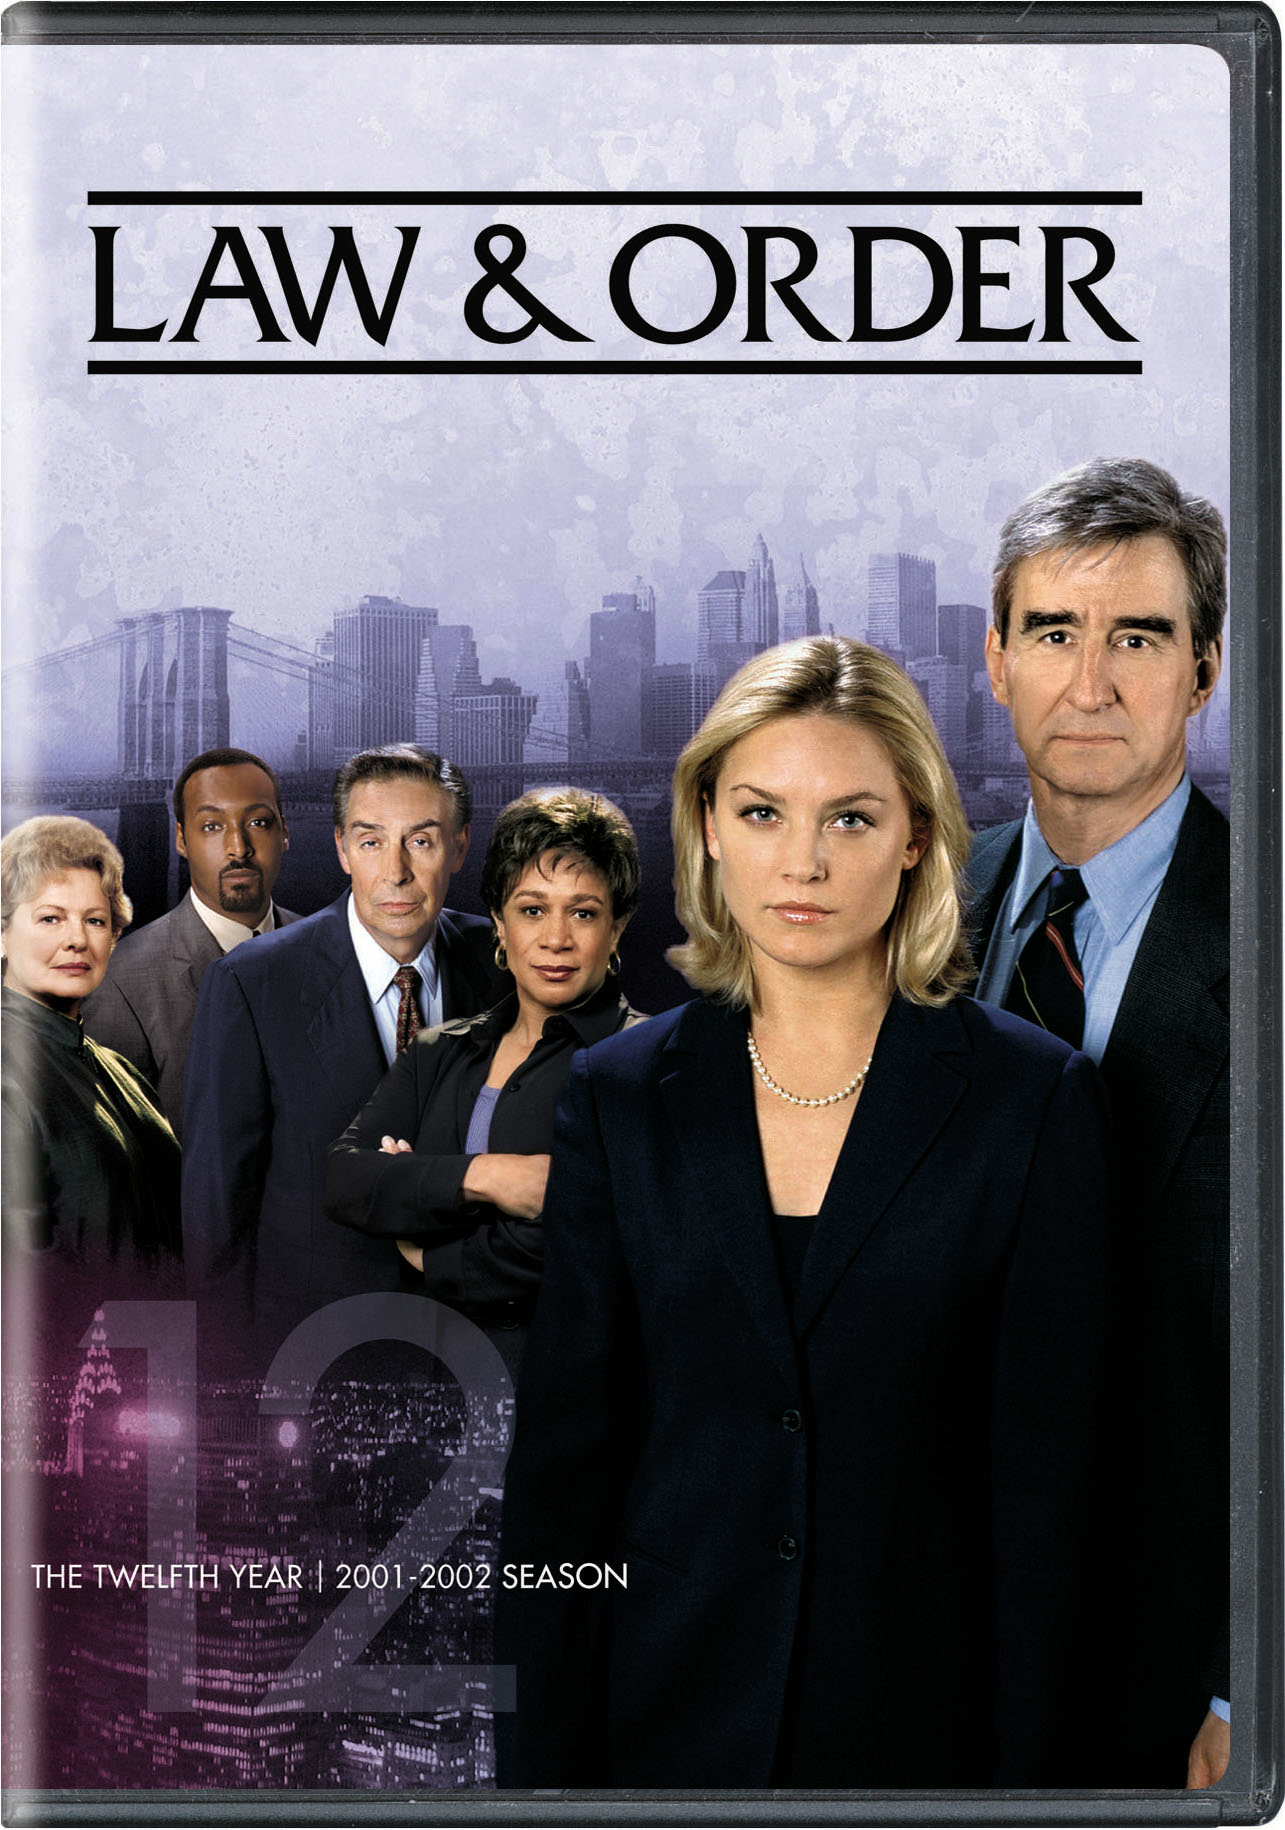 Law & Order: The Twelfth Year [DVD]